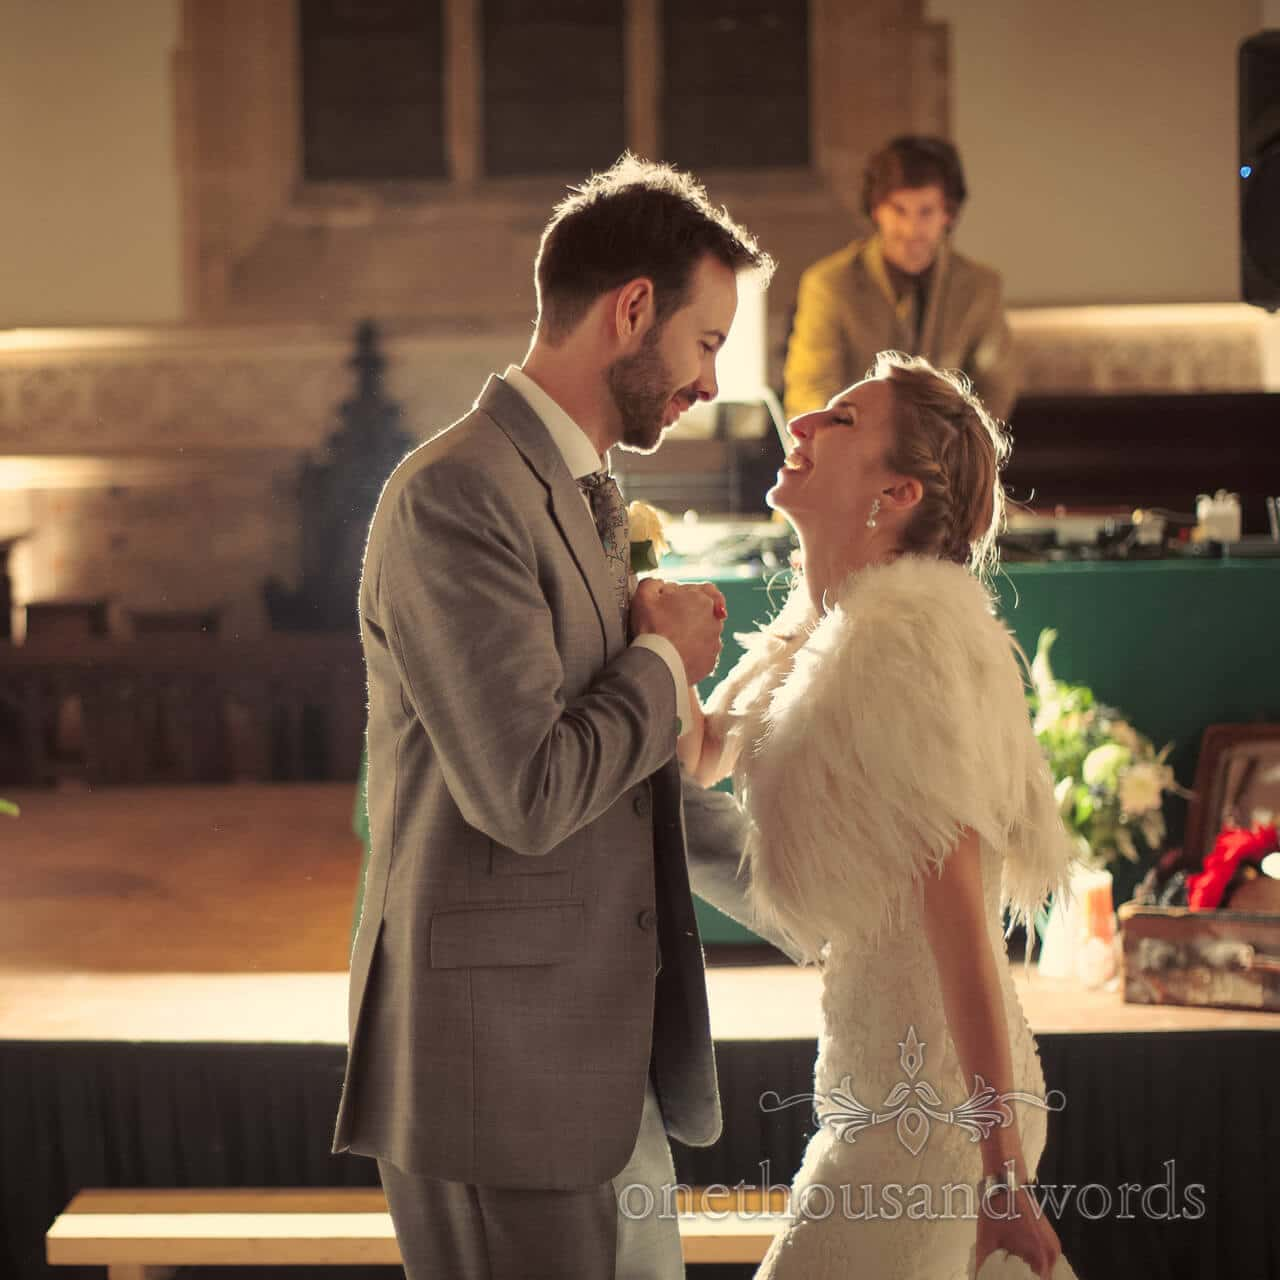 First dance wedding photograph at Pluch Manor Wedding